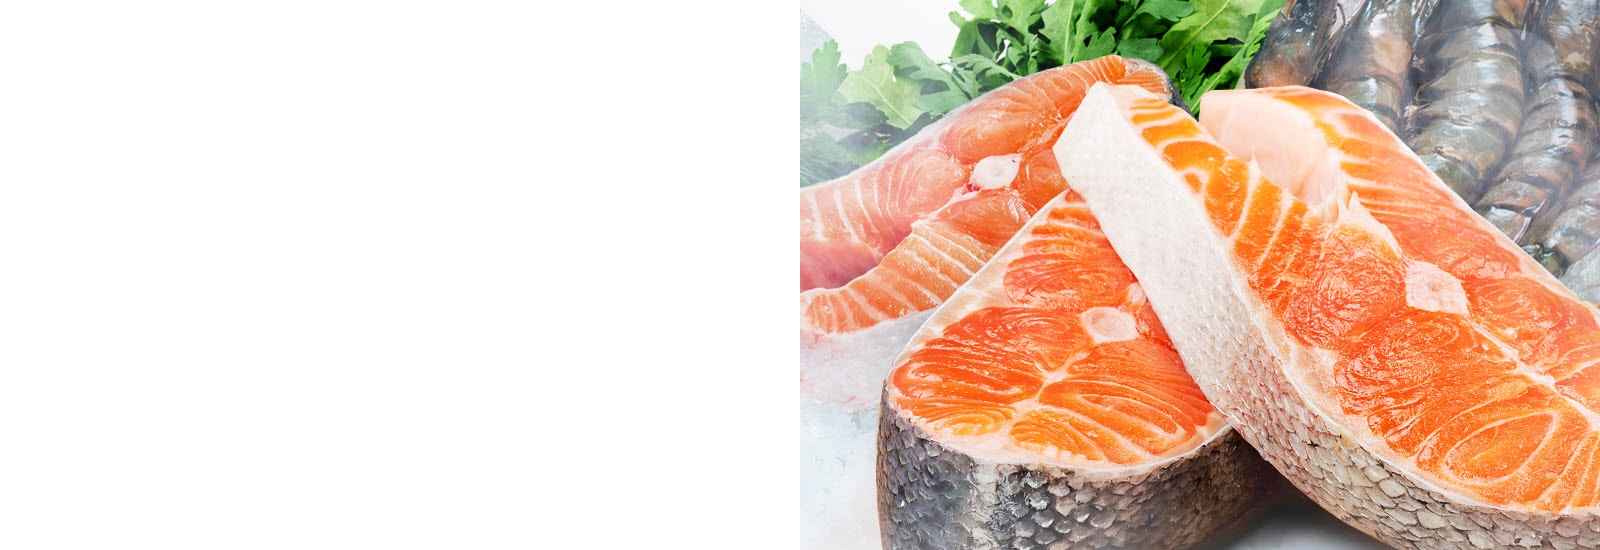 Salmon and shrimp are shown thawed and ready to cook.